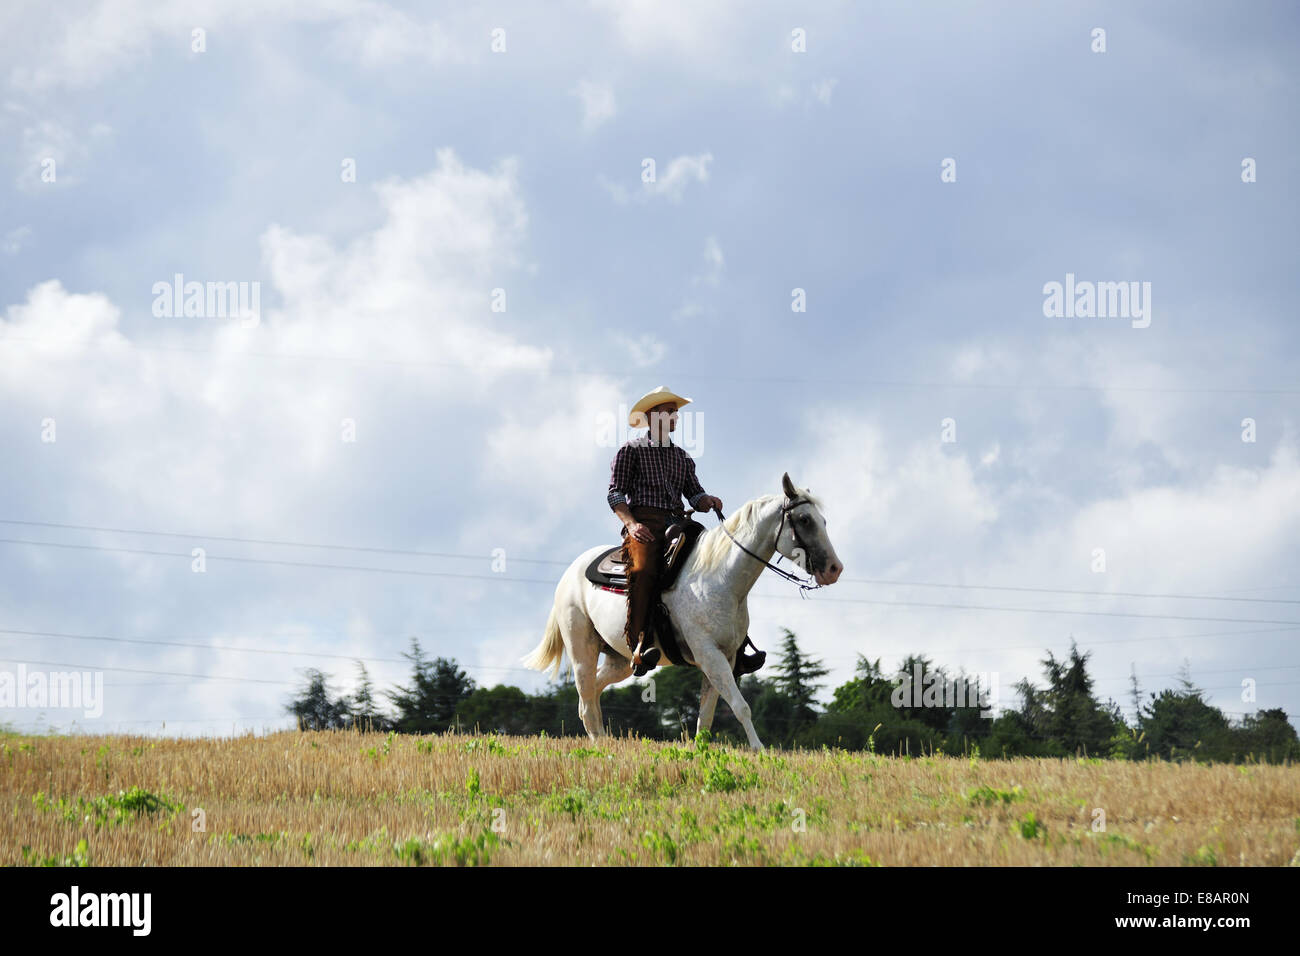 Young man in cowboy gear trotting on horse in field - Stock Image